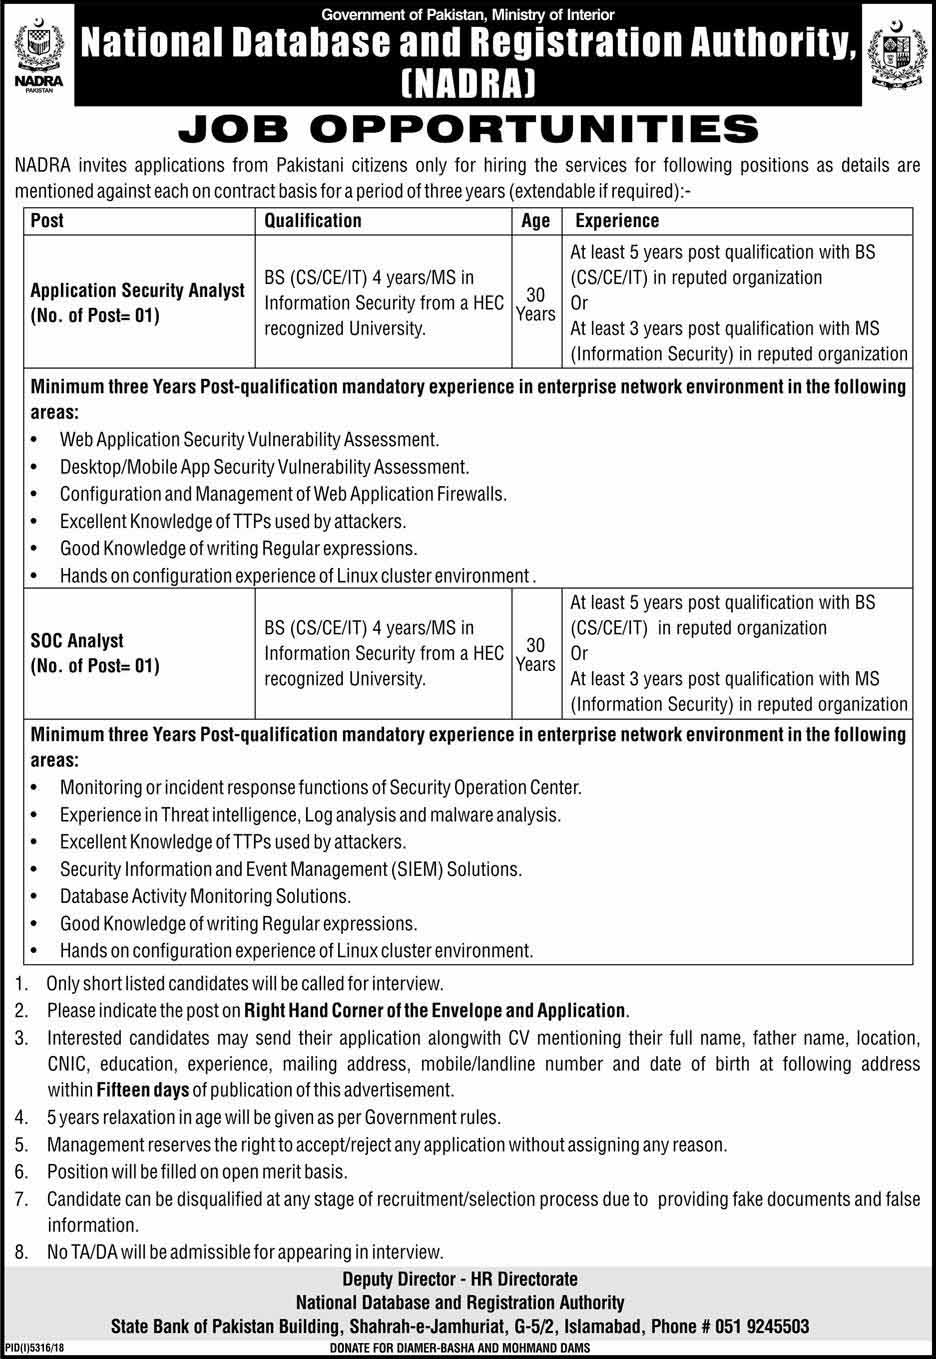 Jobs in National Database & Registration Authority, NADRA 09 May 2019